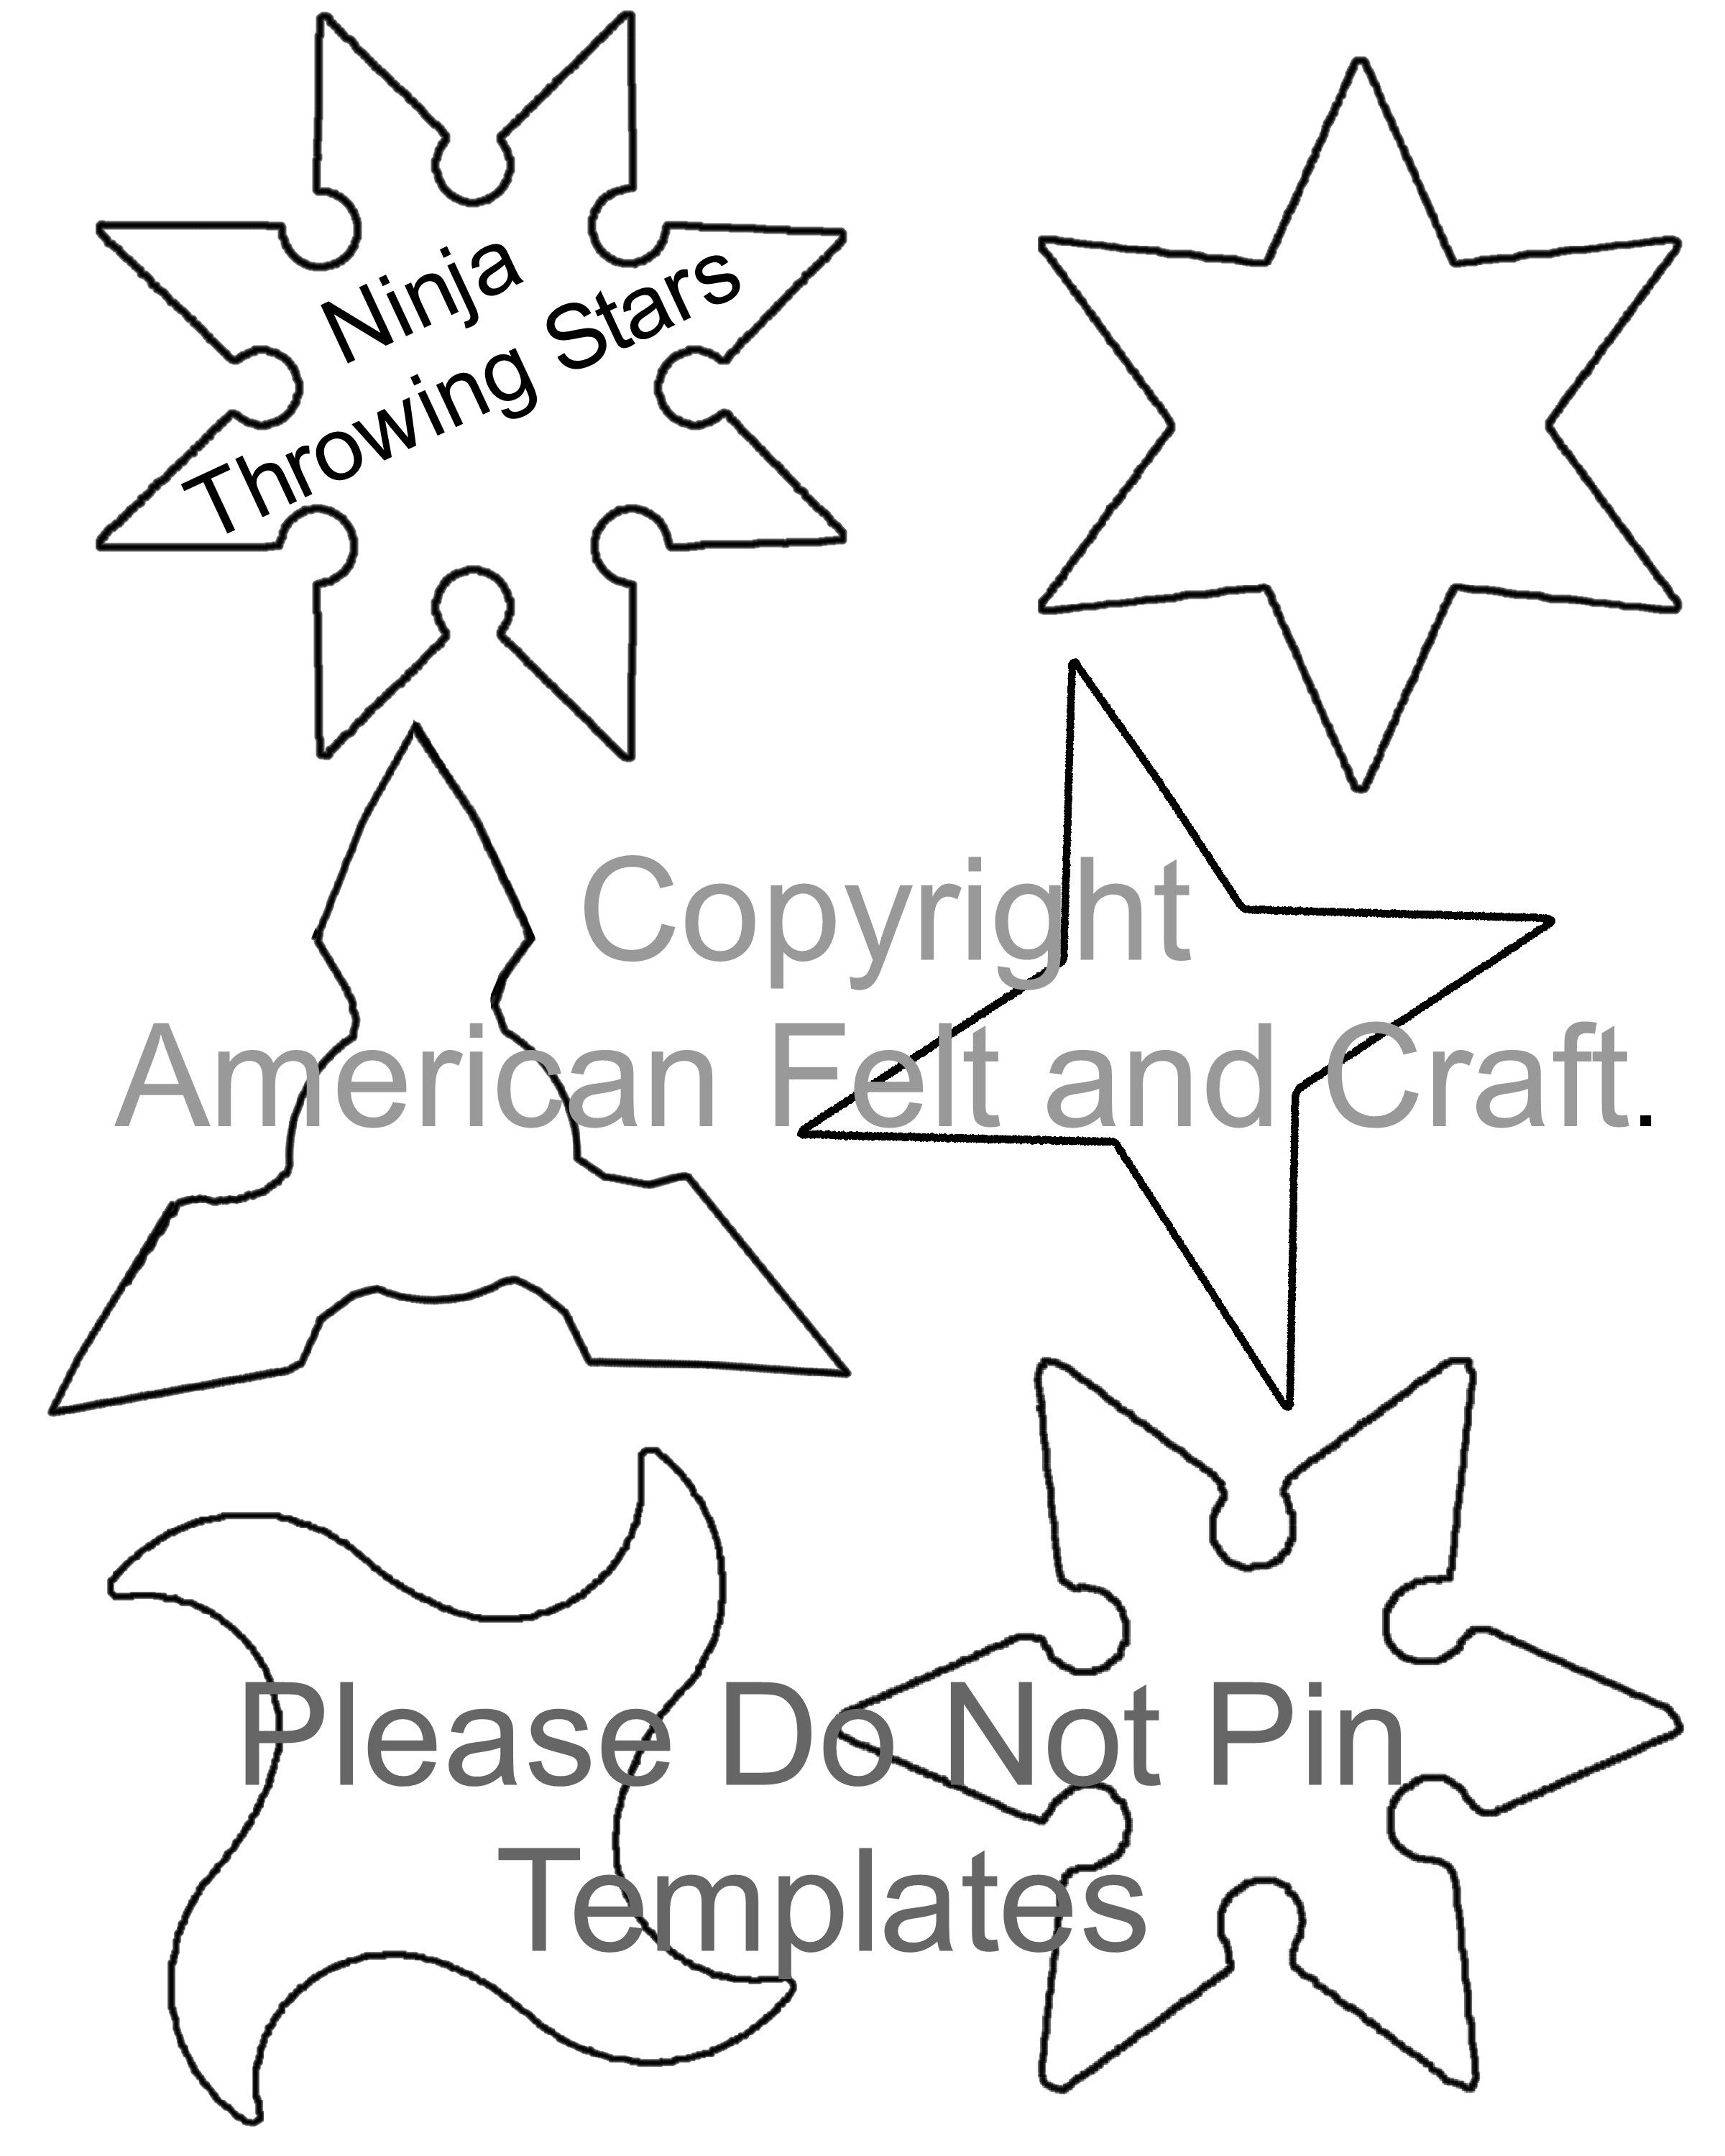 American Felt And Craft The Blog On Wordpress Com Throwing Stars Star Template Ninja Crafts